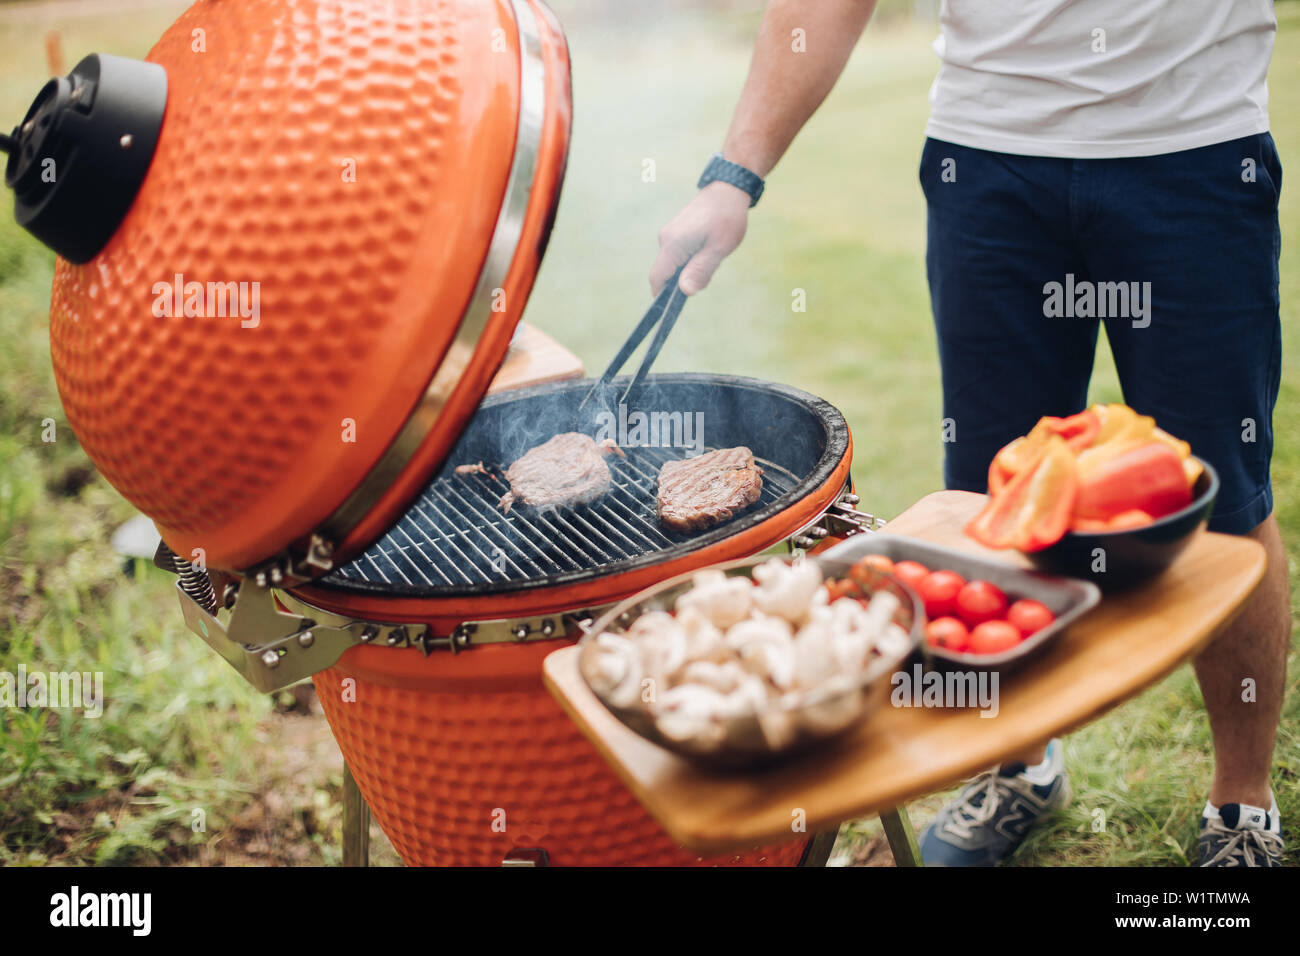 Unrecognizable man cooking meat on grill.Table with sliced mushrooms and vegetables. Summer picnic party. - Stock Image